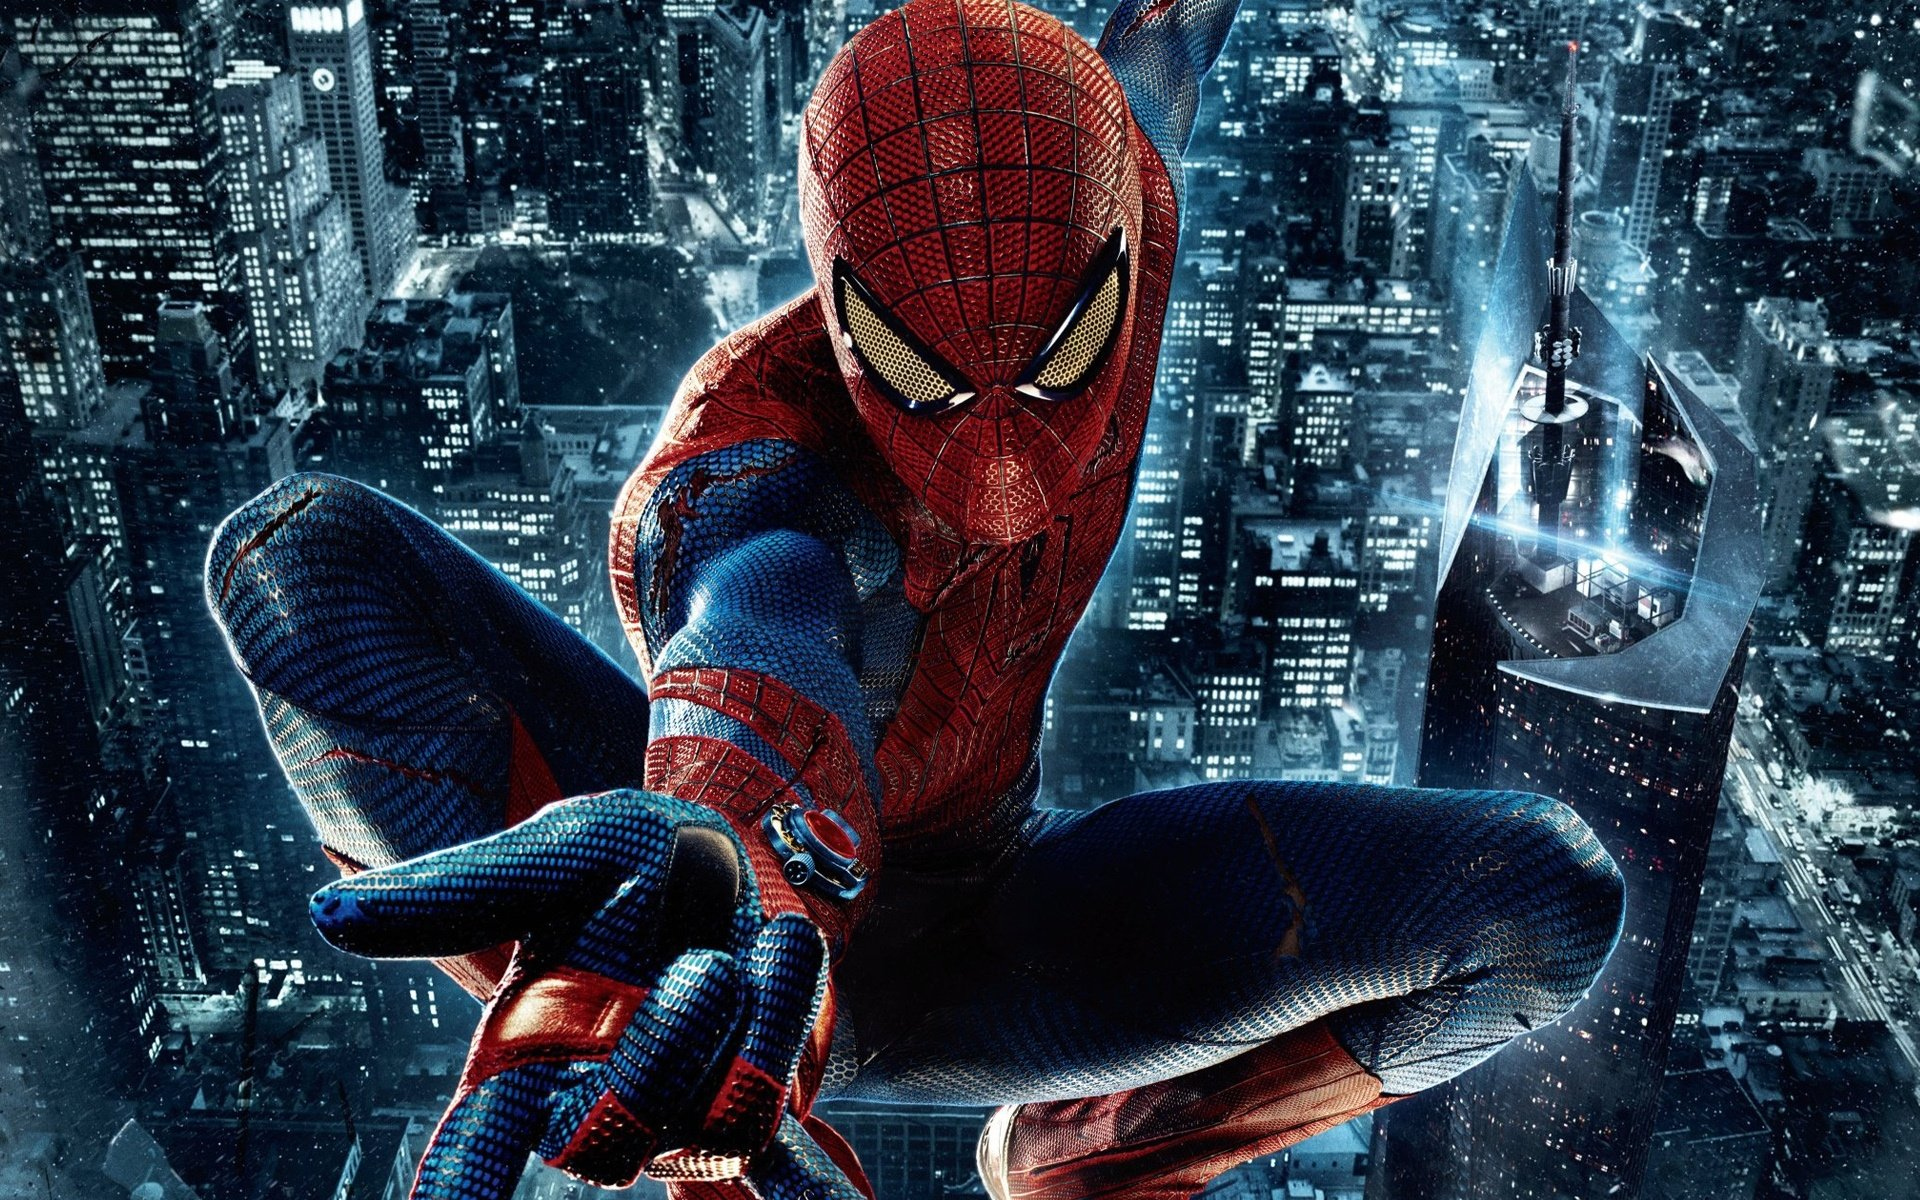 the amazing spider man 2 wallpaper 1920?1080 | PIC HD | Pinterest ...